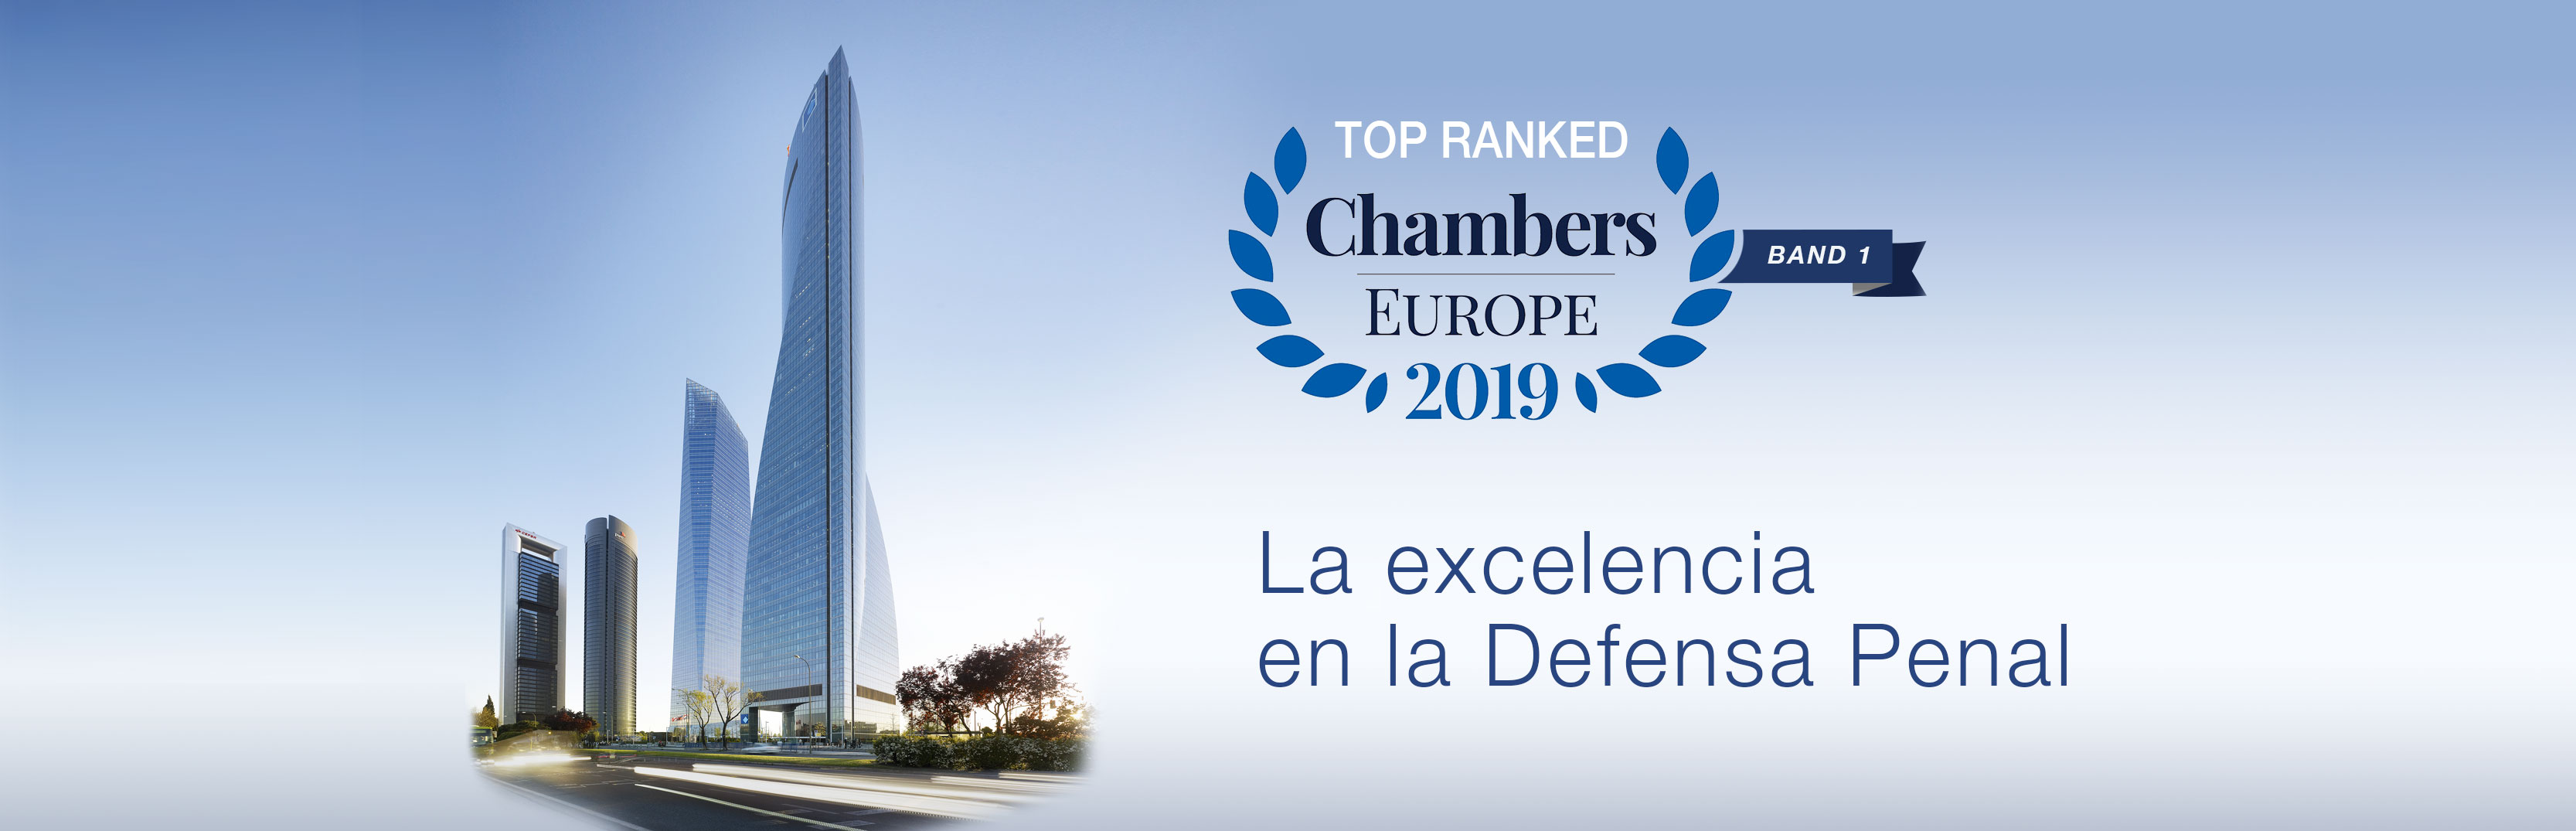 Top Ranked Chambers Europe 2019